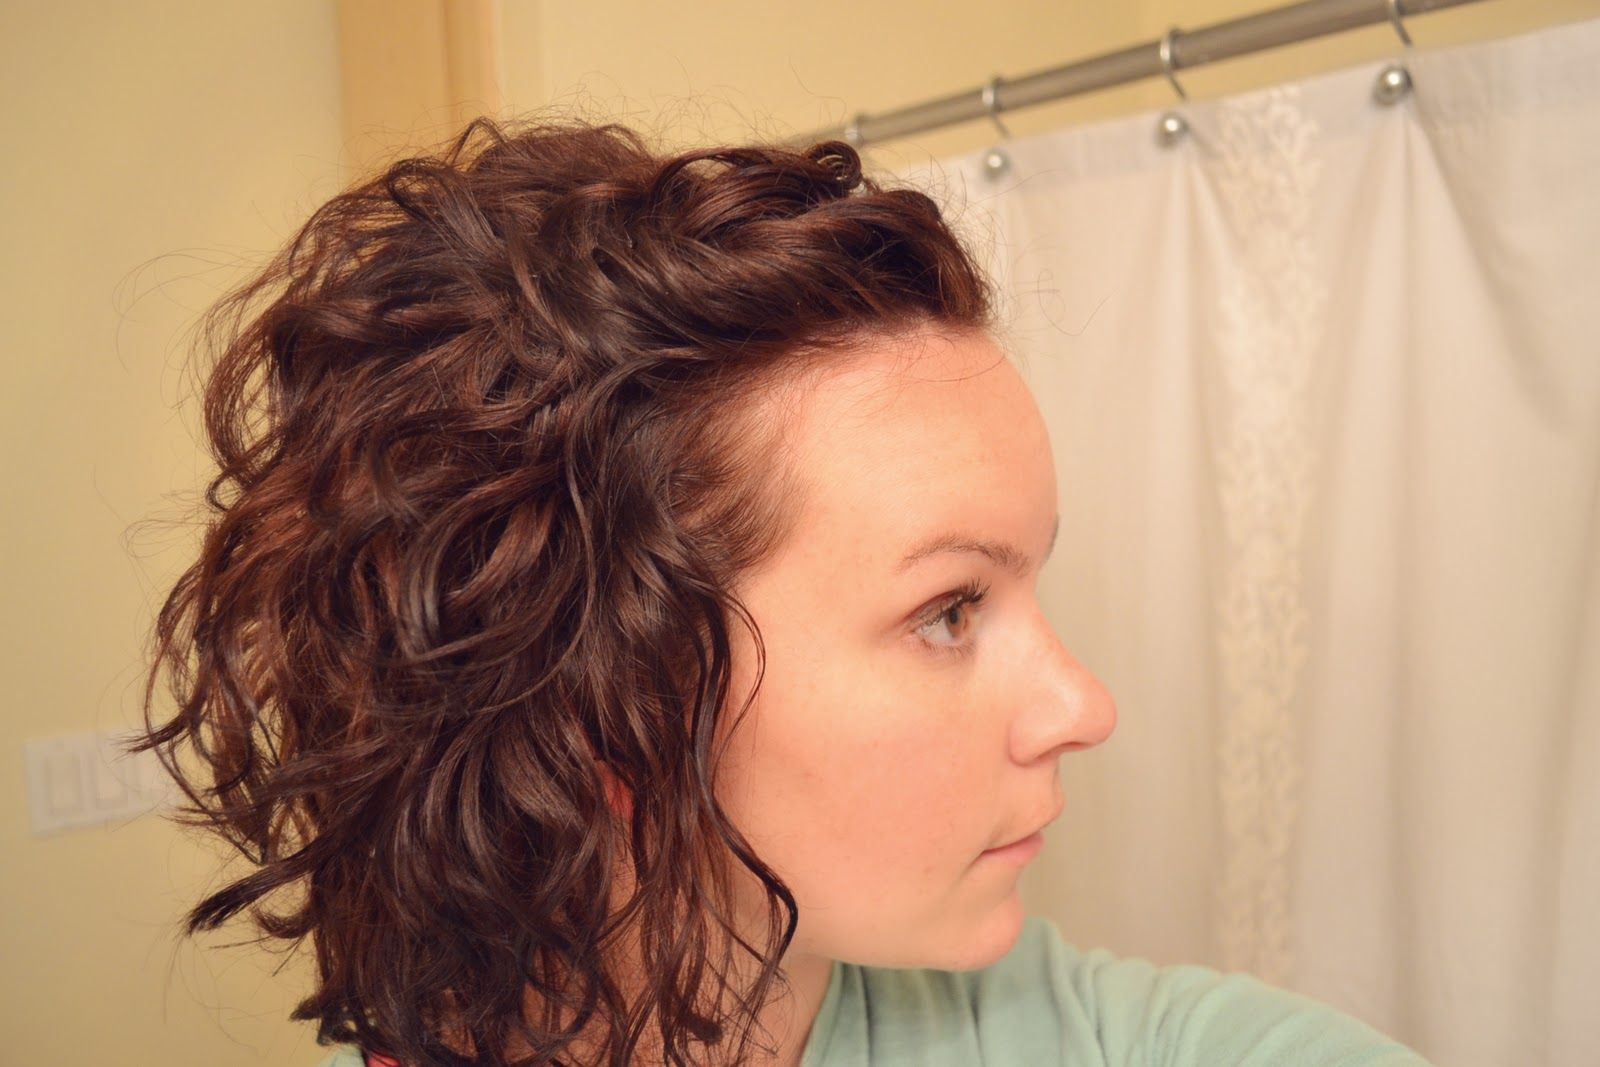 Inverted Curly Bob With Front Pinned Up Curly Hair Styles Naturally Curly Hair Styles Curly Hair Tips